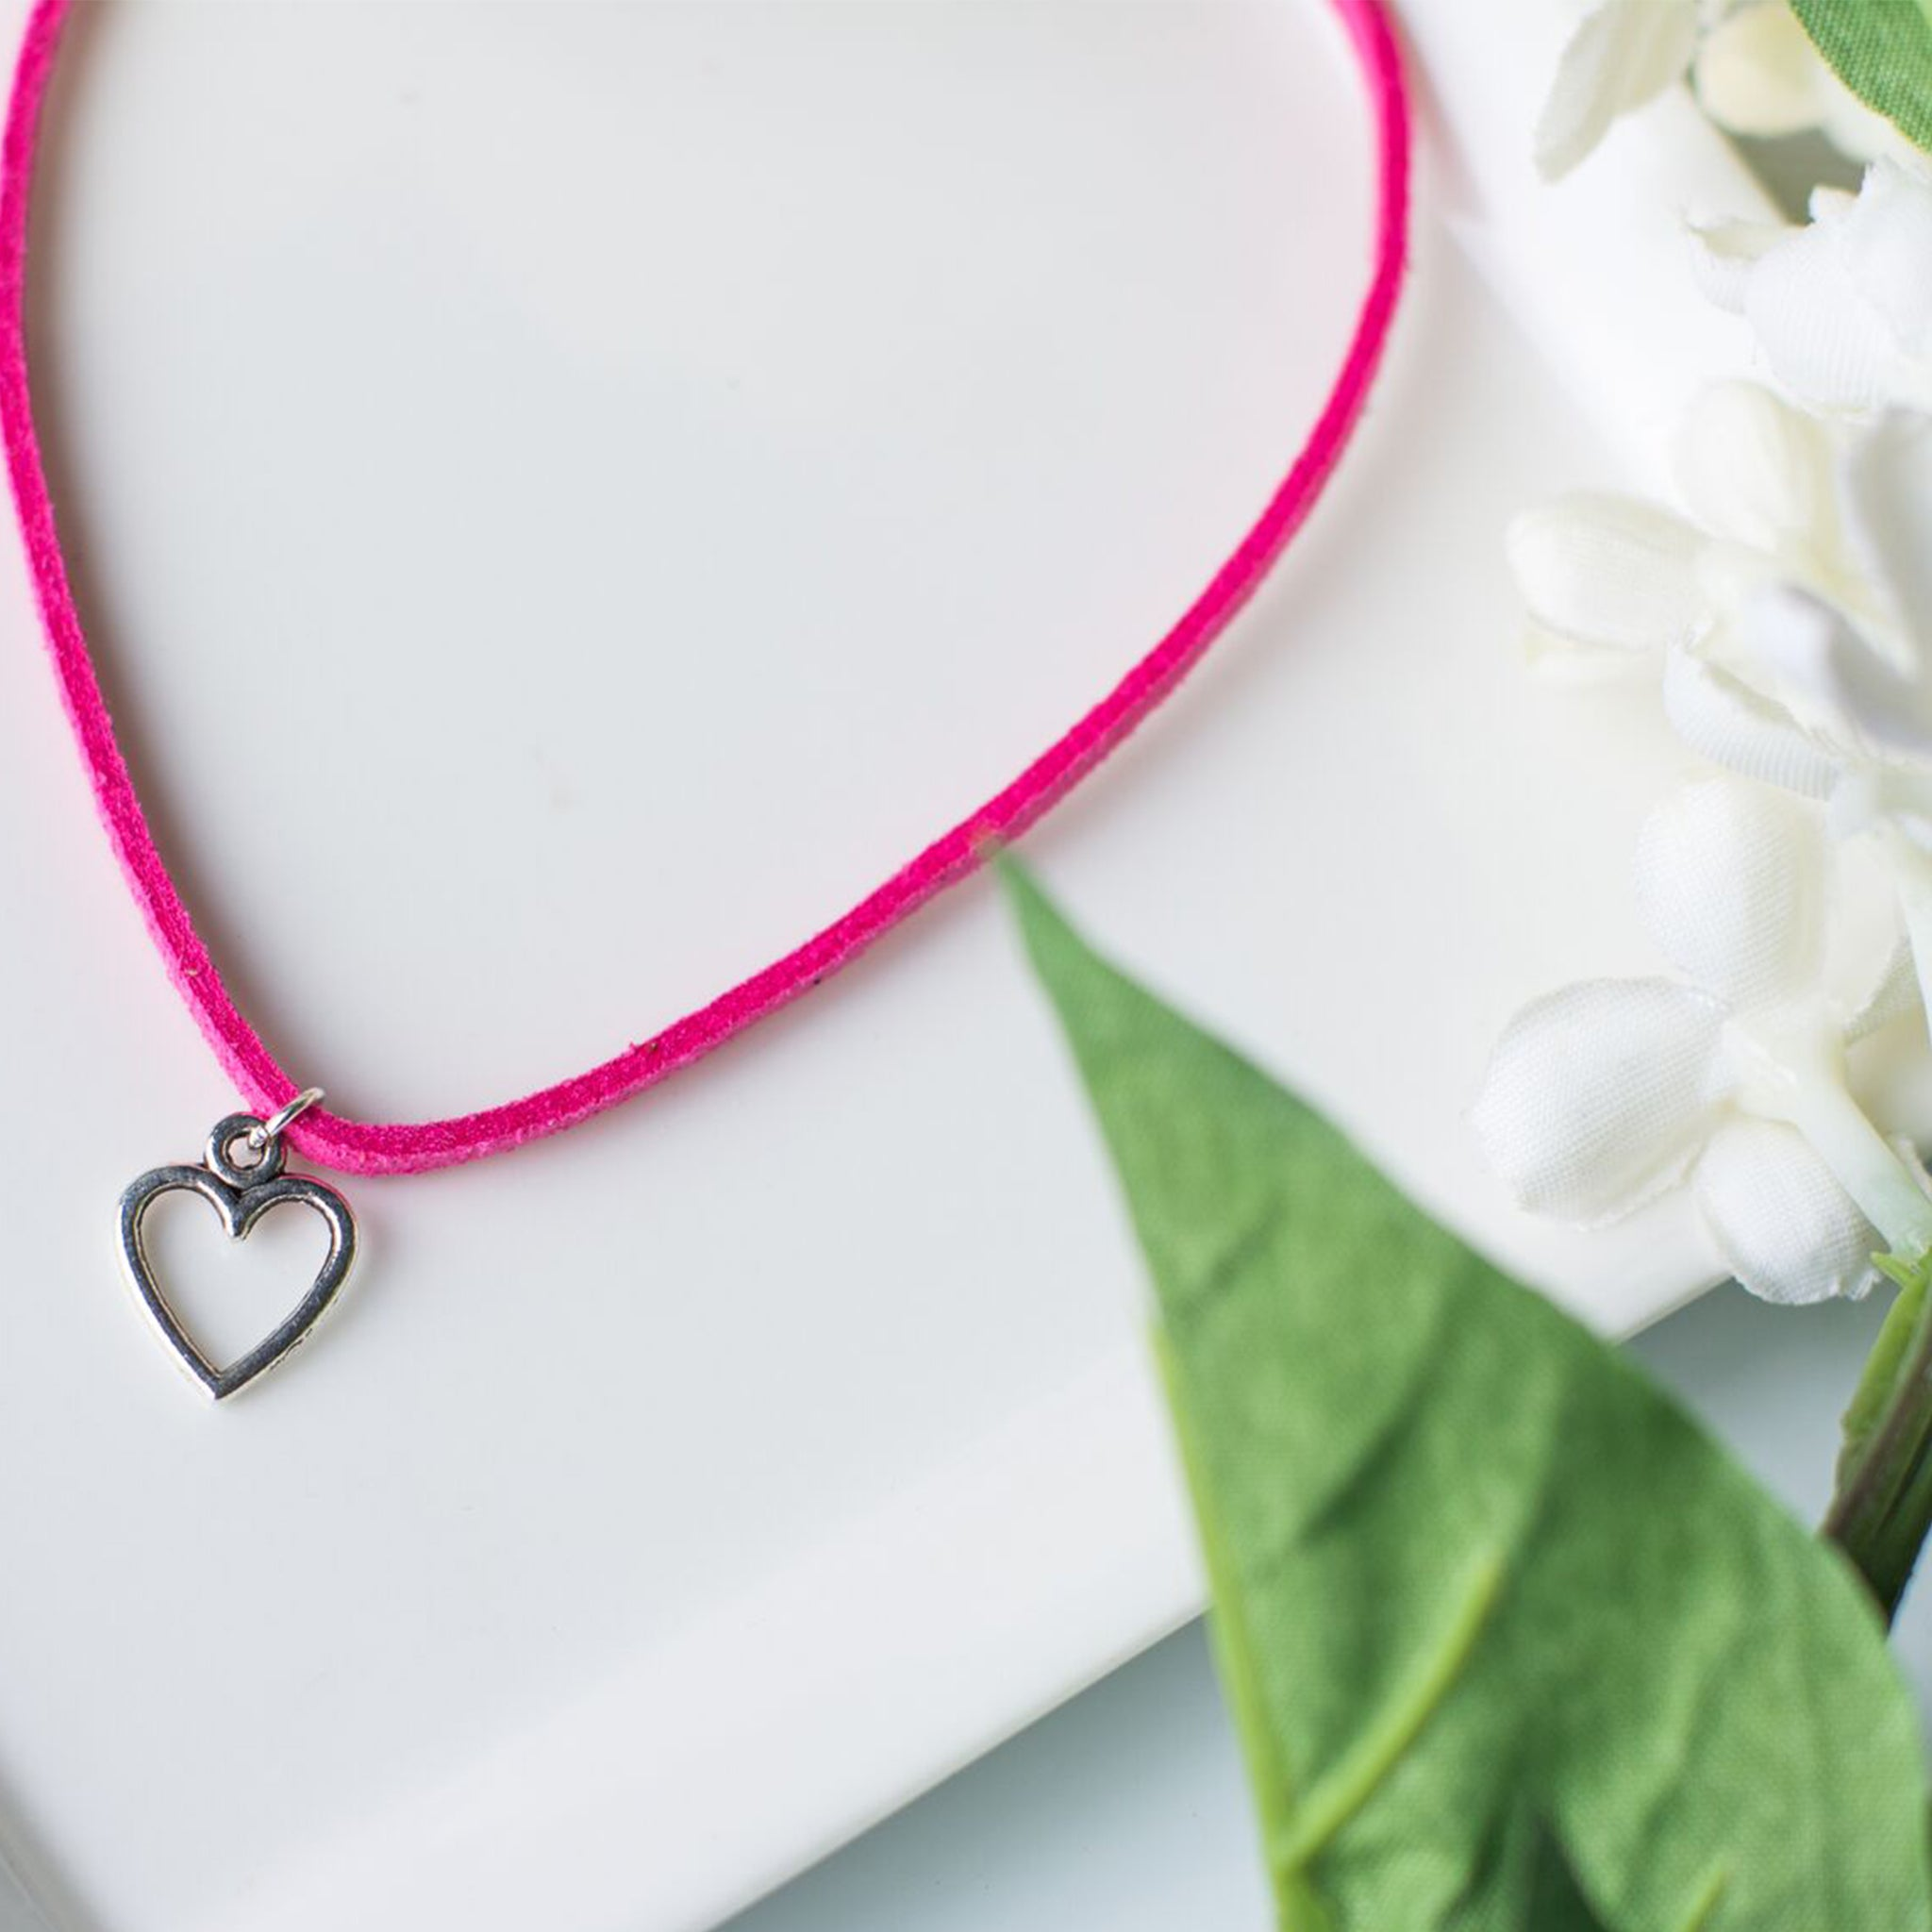 Handmade Heart Bracelet - Personalized Gift with Custom Message - Swanky Collection